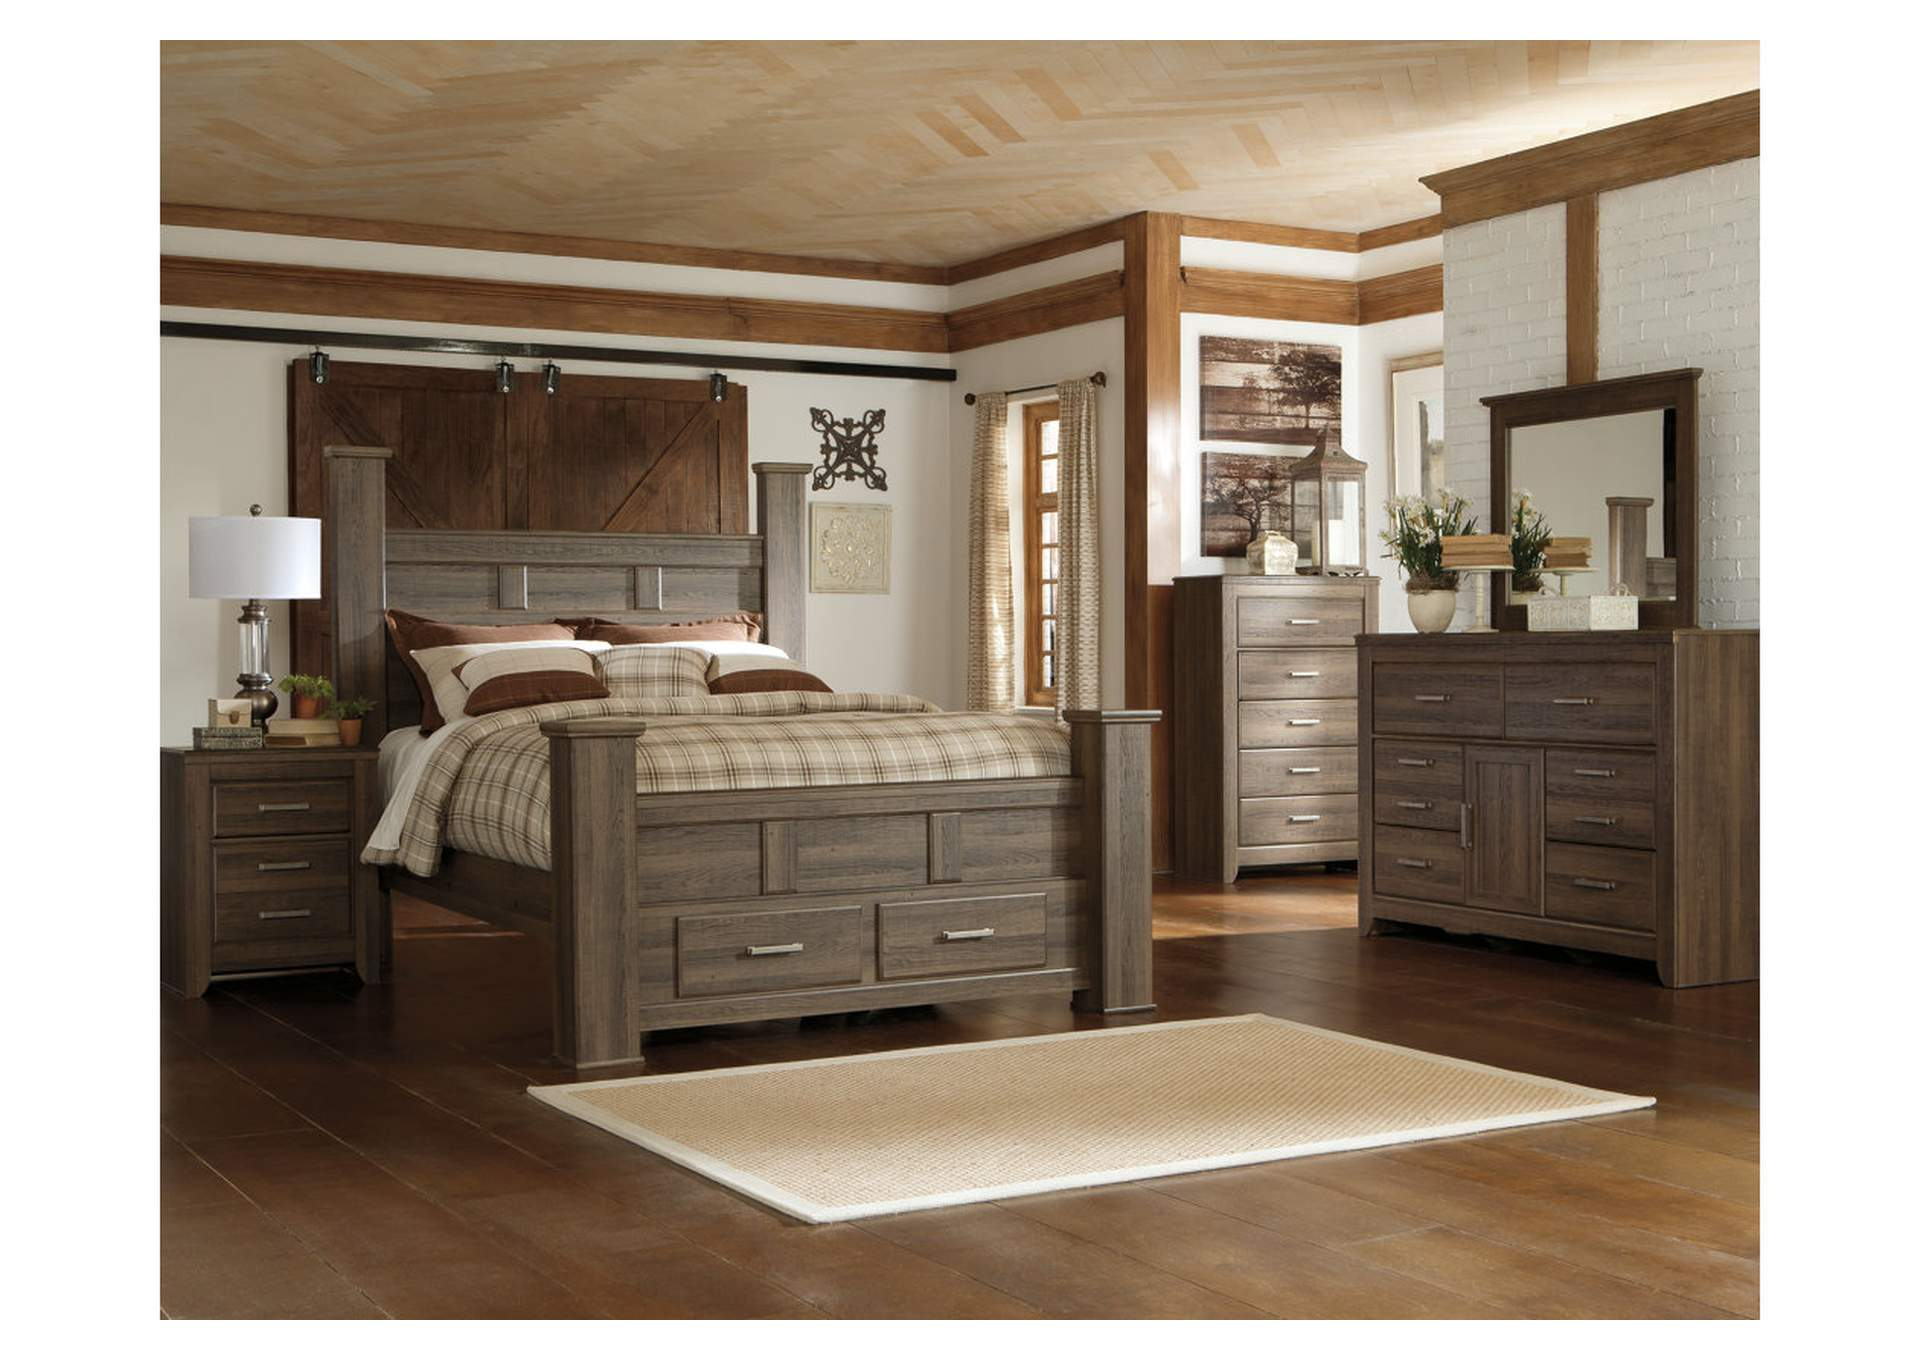 Juararo Queen Poster Storage Bed w/Dresser, Mirror, Drawer Chest & Nightstand,Signature Design By Ashley